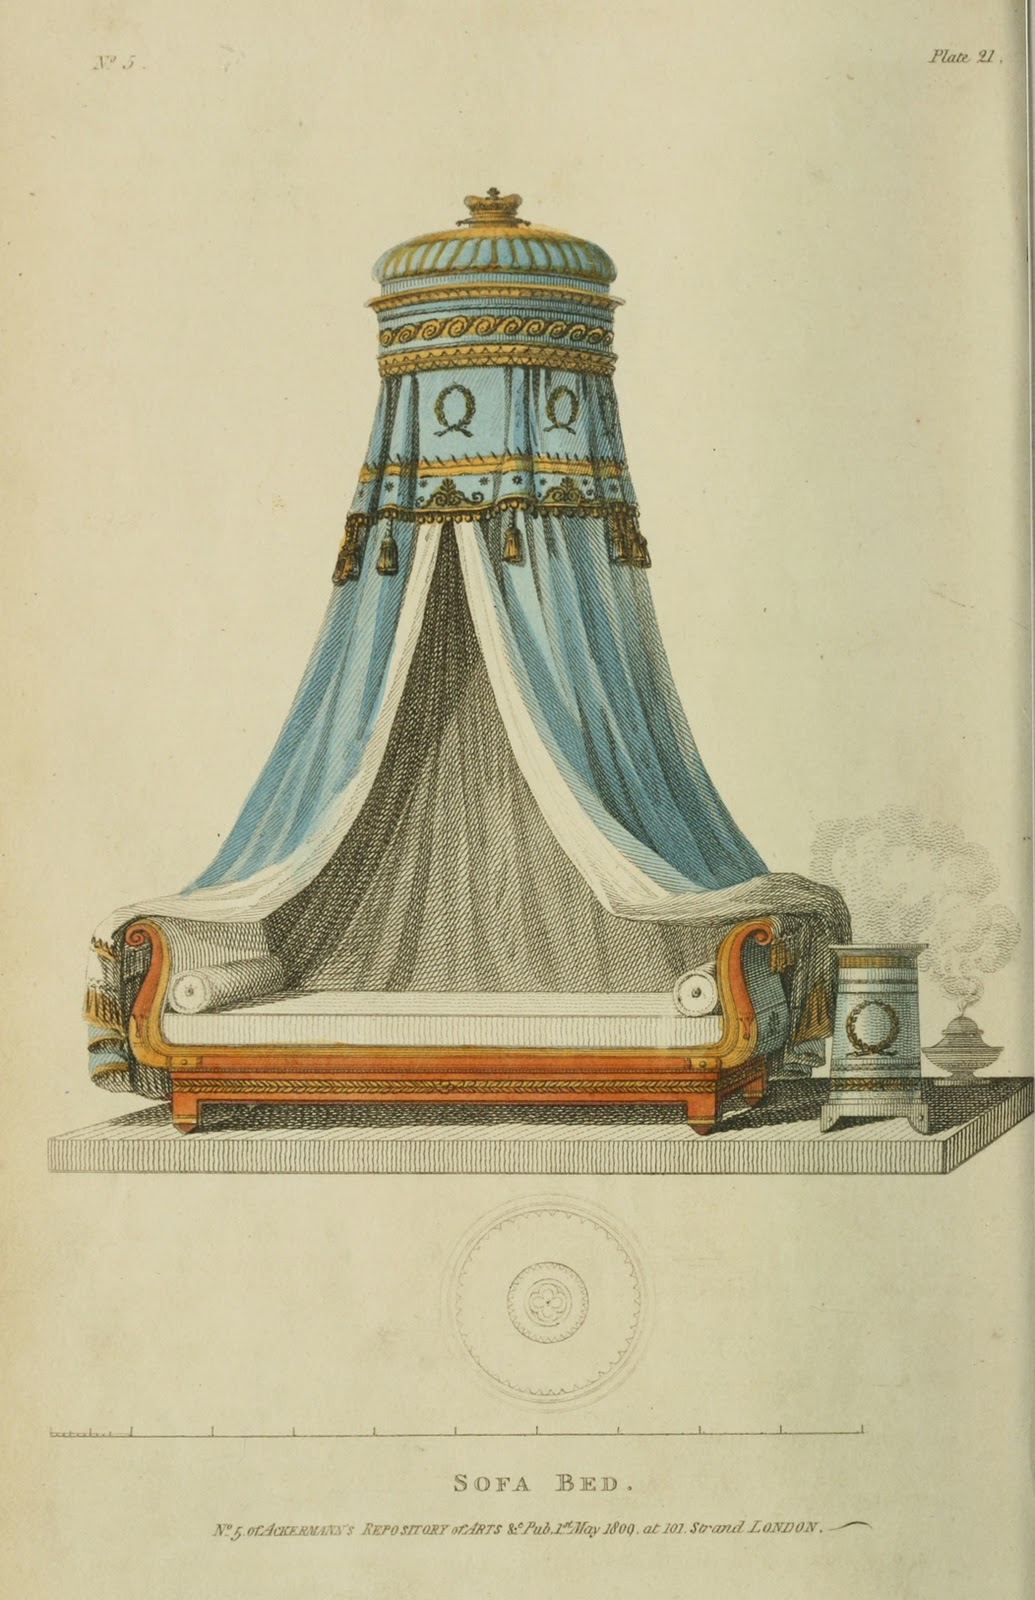 French sofa bed. 1809.